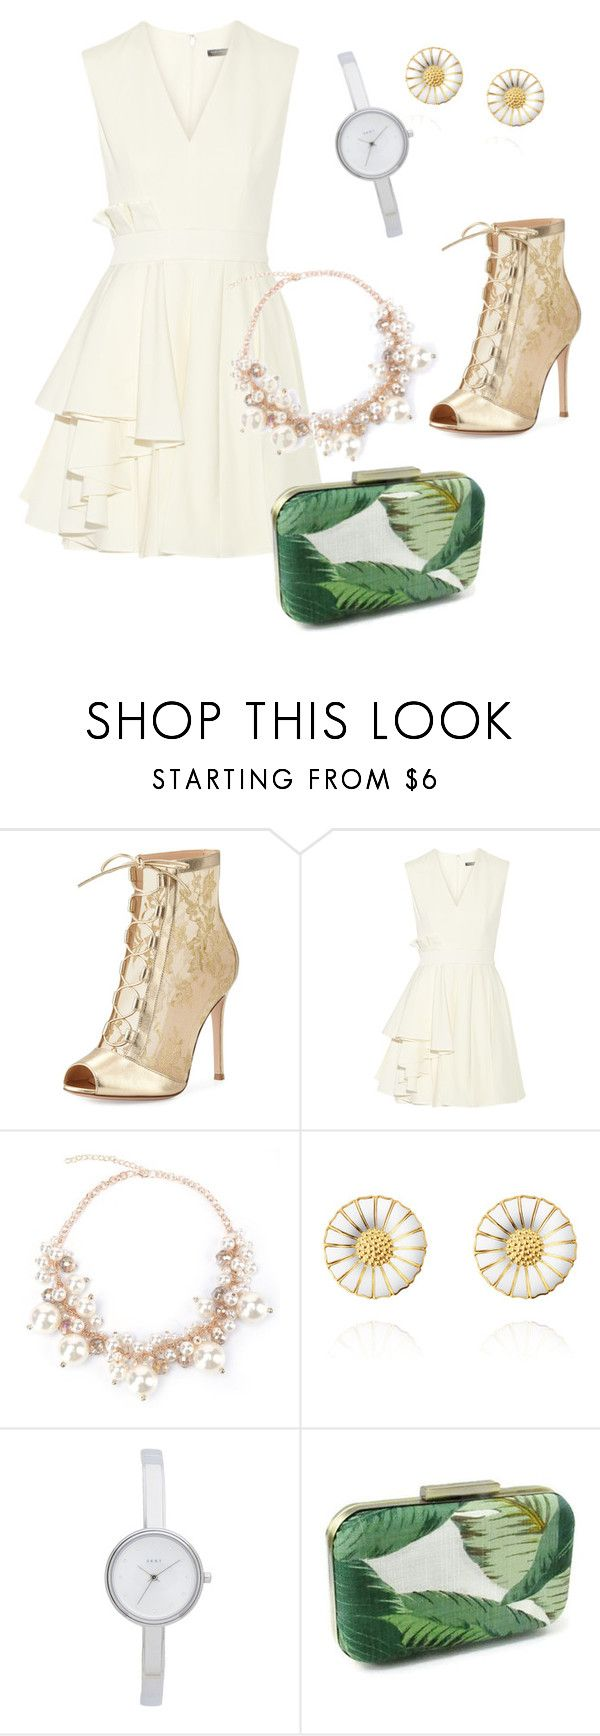 """outfit#104"" by alifia-fae on Polyvore featuring Gianvito Rossi, Alexander McQueen and DKNY"